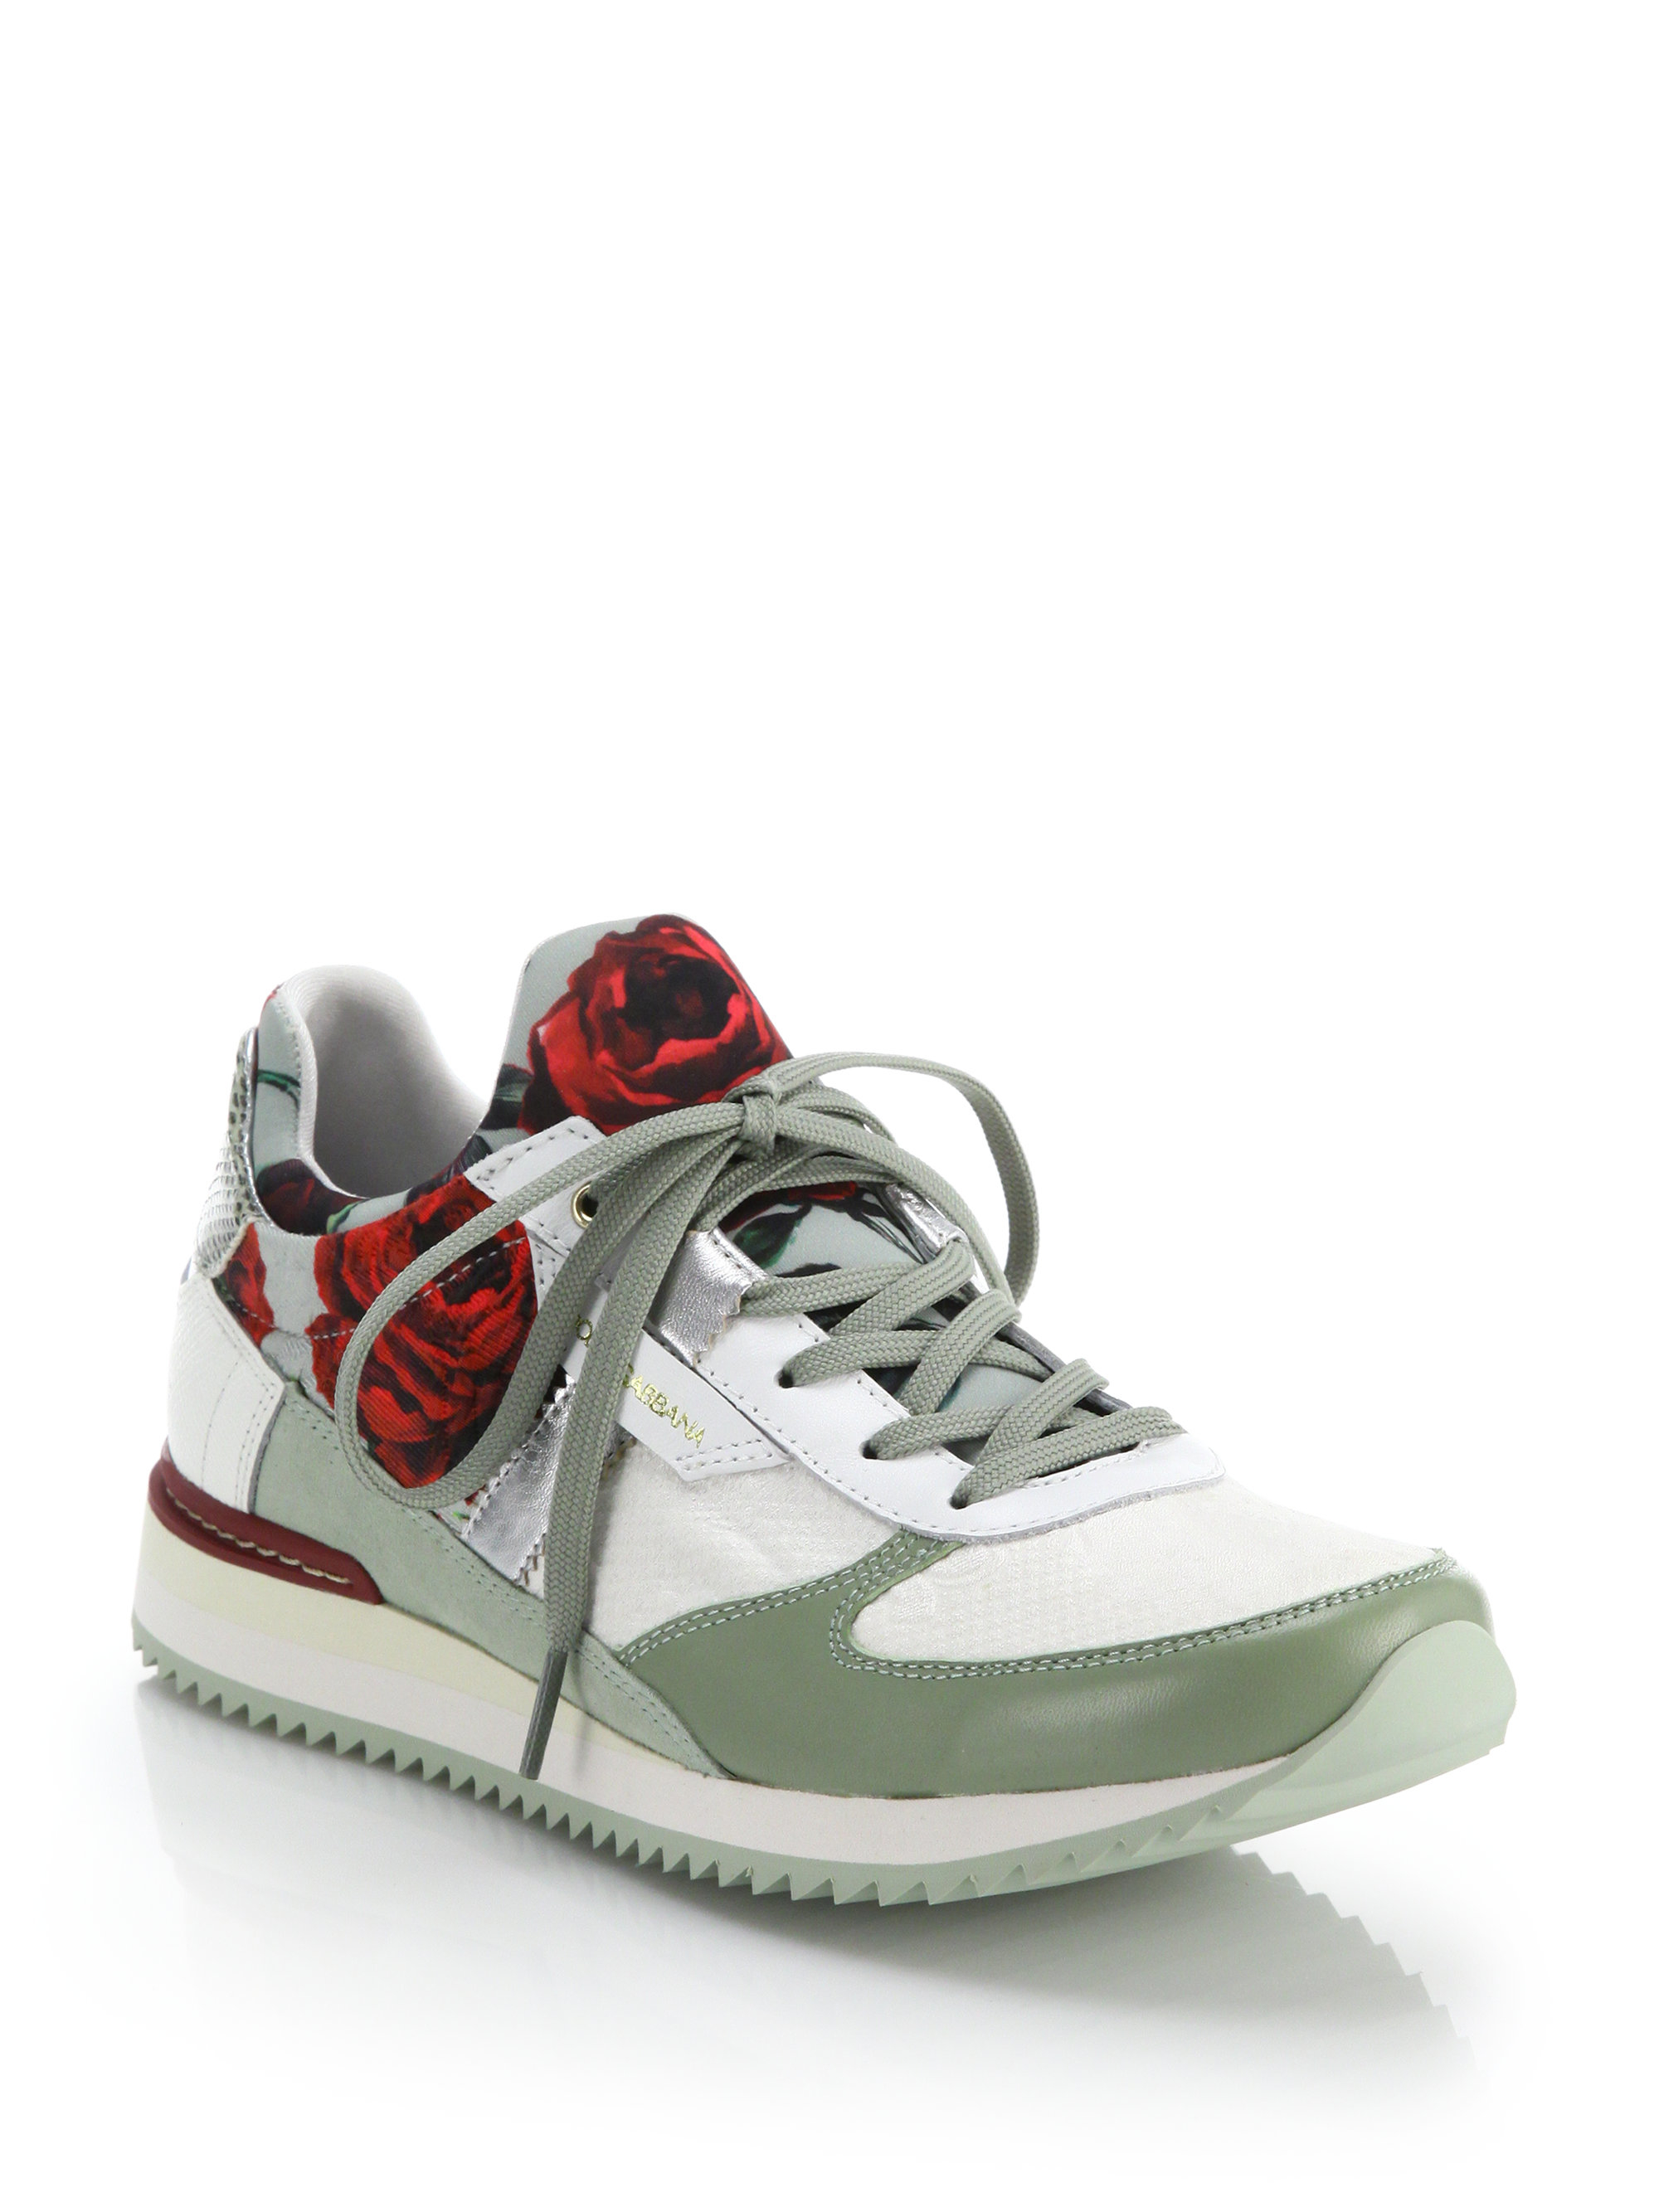 Lyst - Dolce   Gabbana Leather-Trimmed Rose-Print Sneakers in Green 667e439953bf